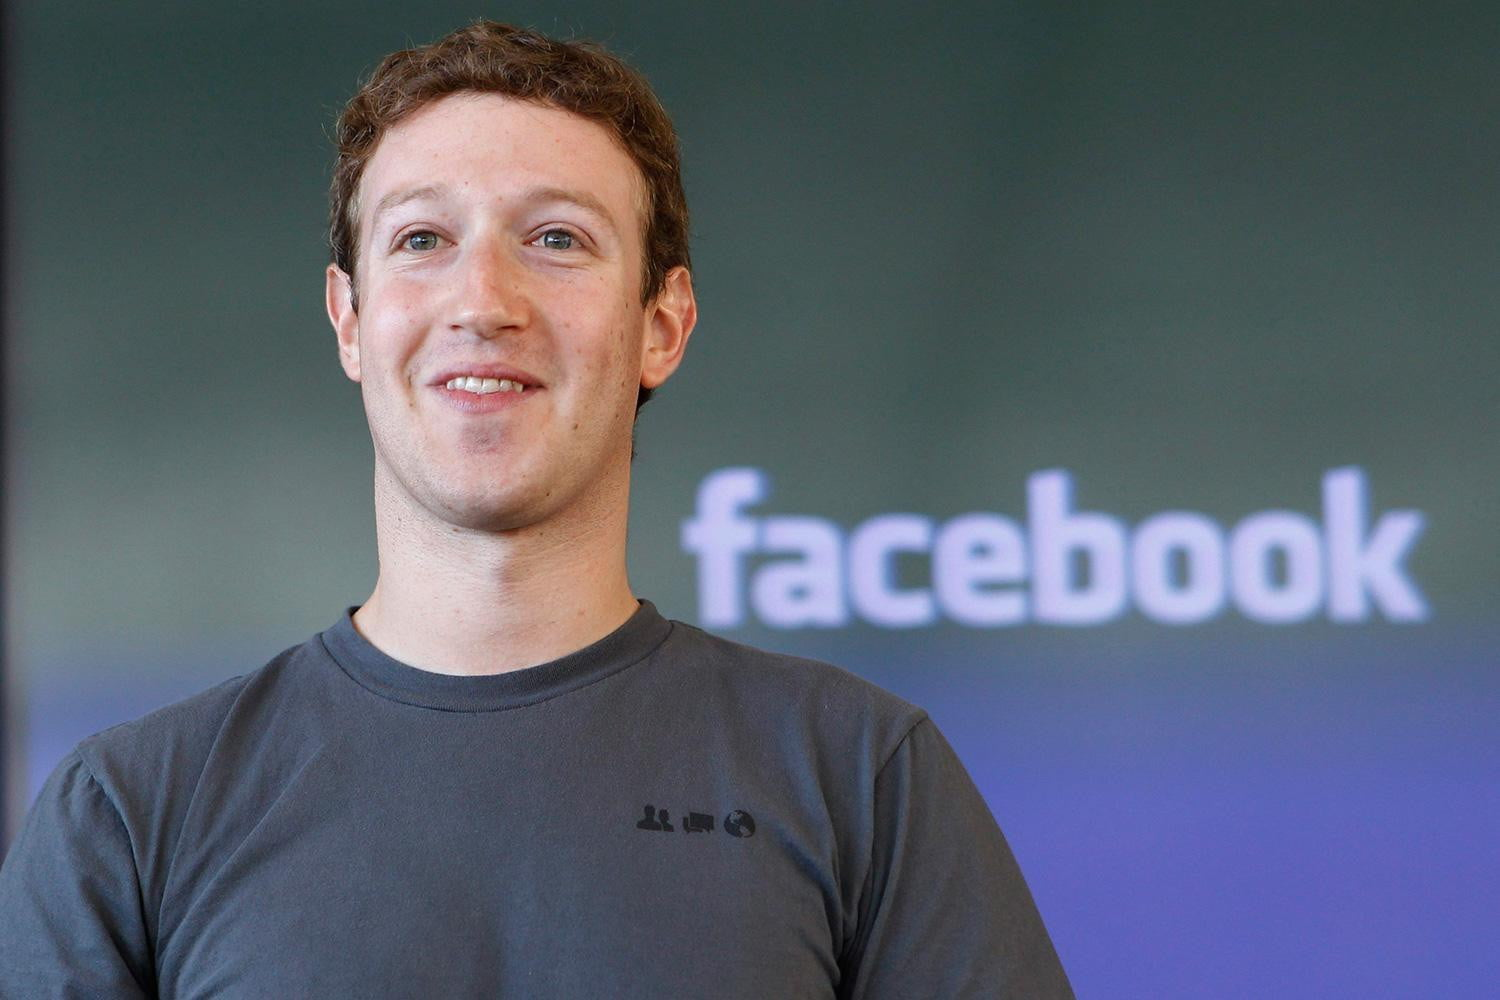 mark zuckerberg future of facebook attribution errors A few years ago he set out to learn mandarin he also built a robot butler for his home last year, he toured america to spend more time with regular citizens (who were also likely facebook users) zuckerberg's goal this year: fix facebook.